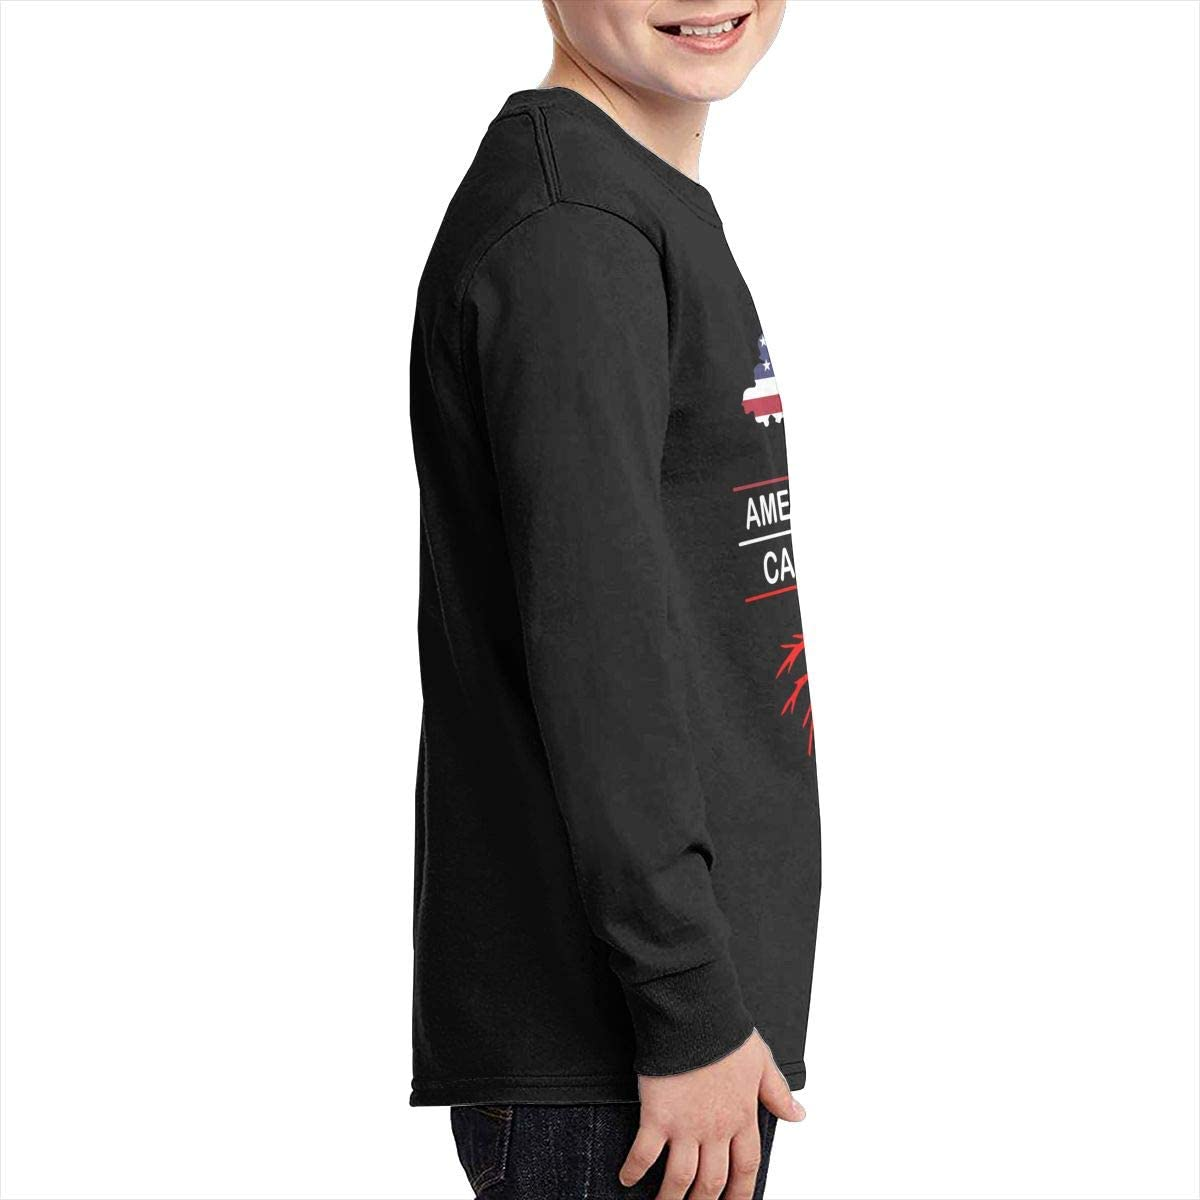 CERTONGCXTS Teen American Grown with Canada Roots-1 ComfortSoft Long Sleeve Tee